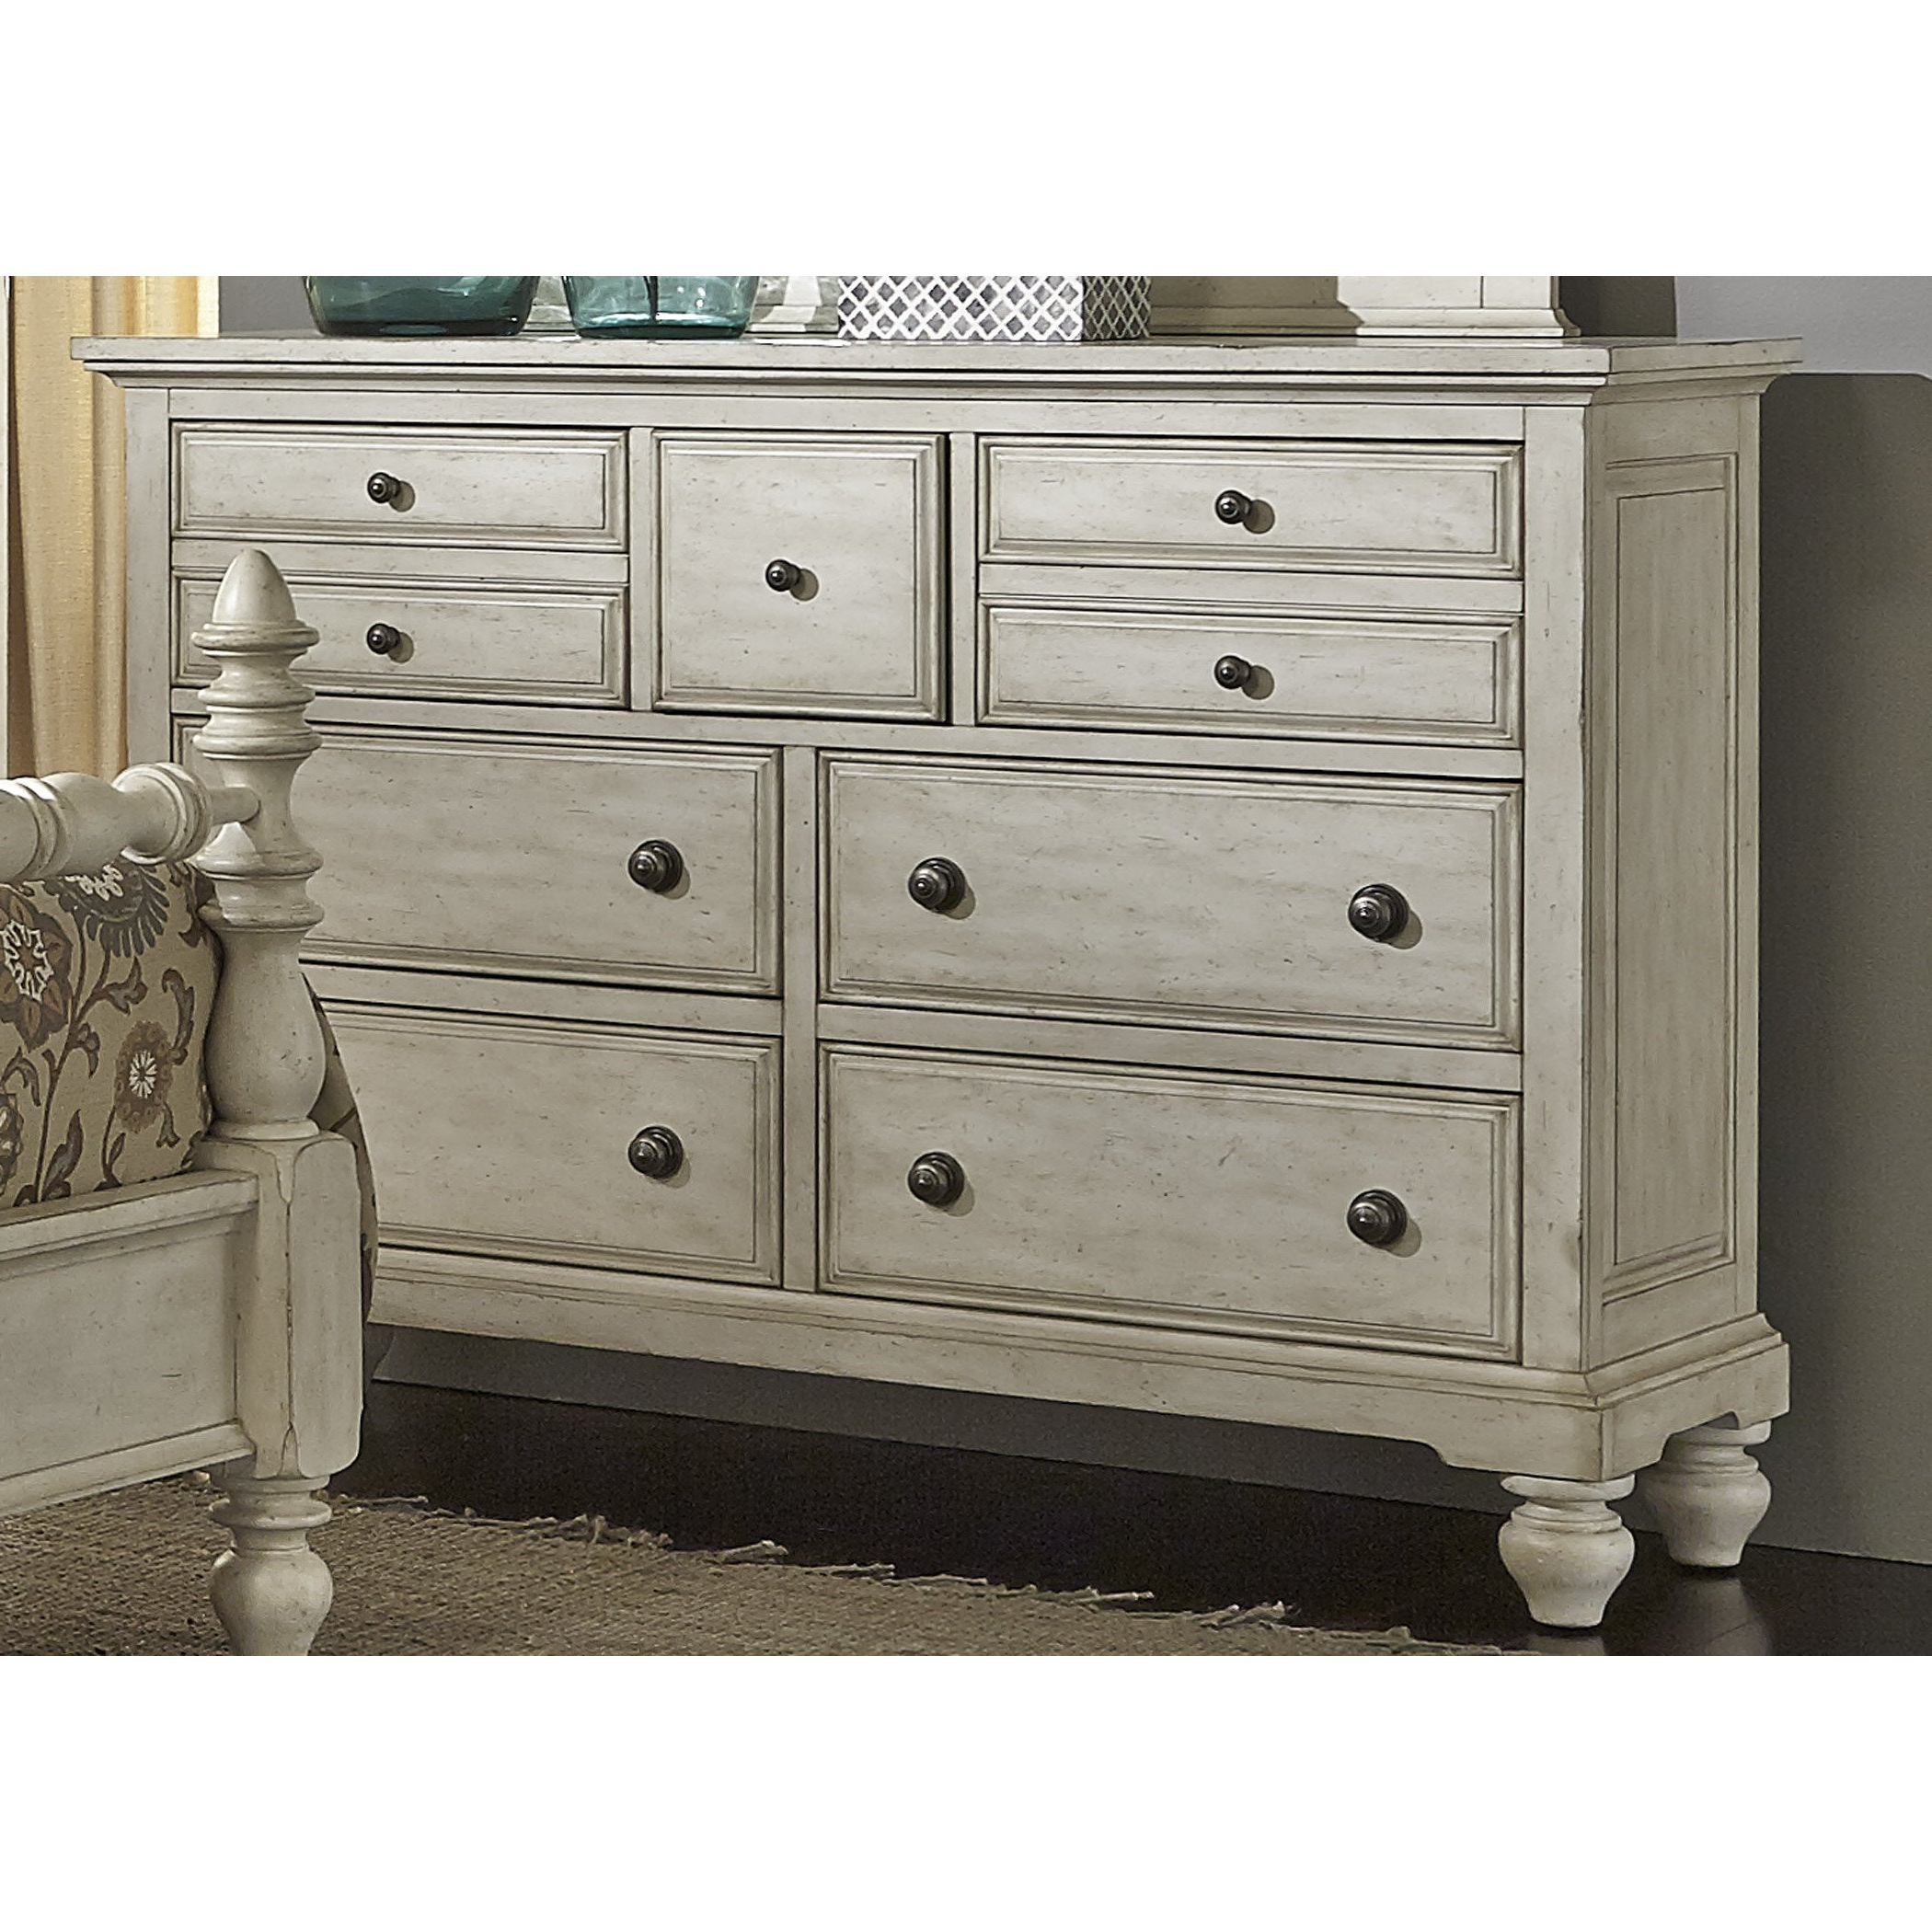 Shop High Country Pine White Washed 7 Drawer Dresser – On Sale Intended For Current Rustic Black & Zebra Pine Sideboards (View 10 of 20)